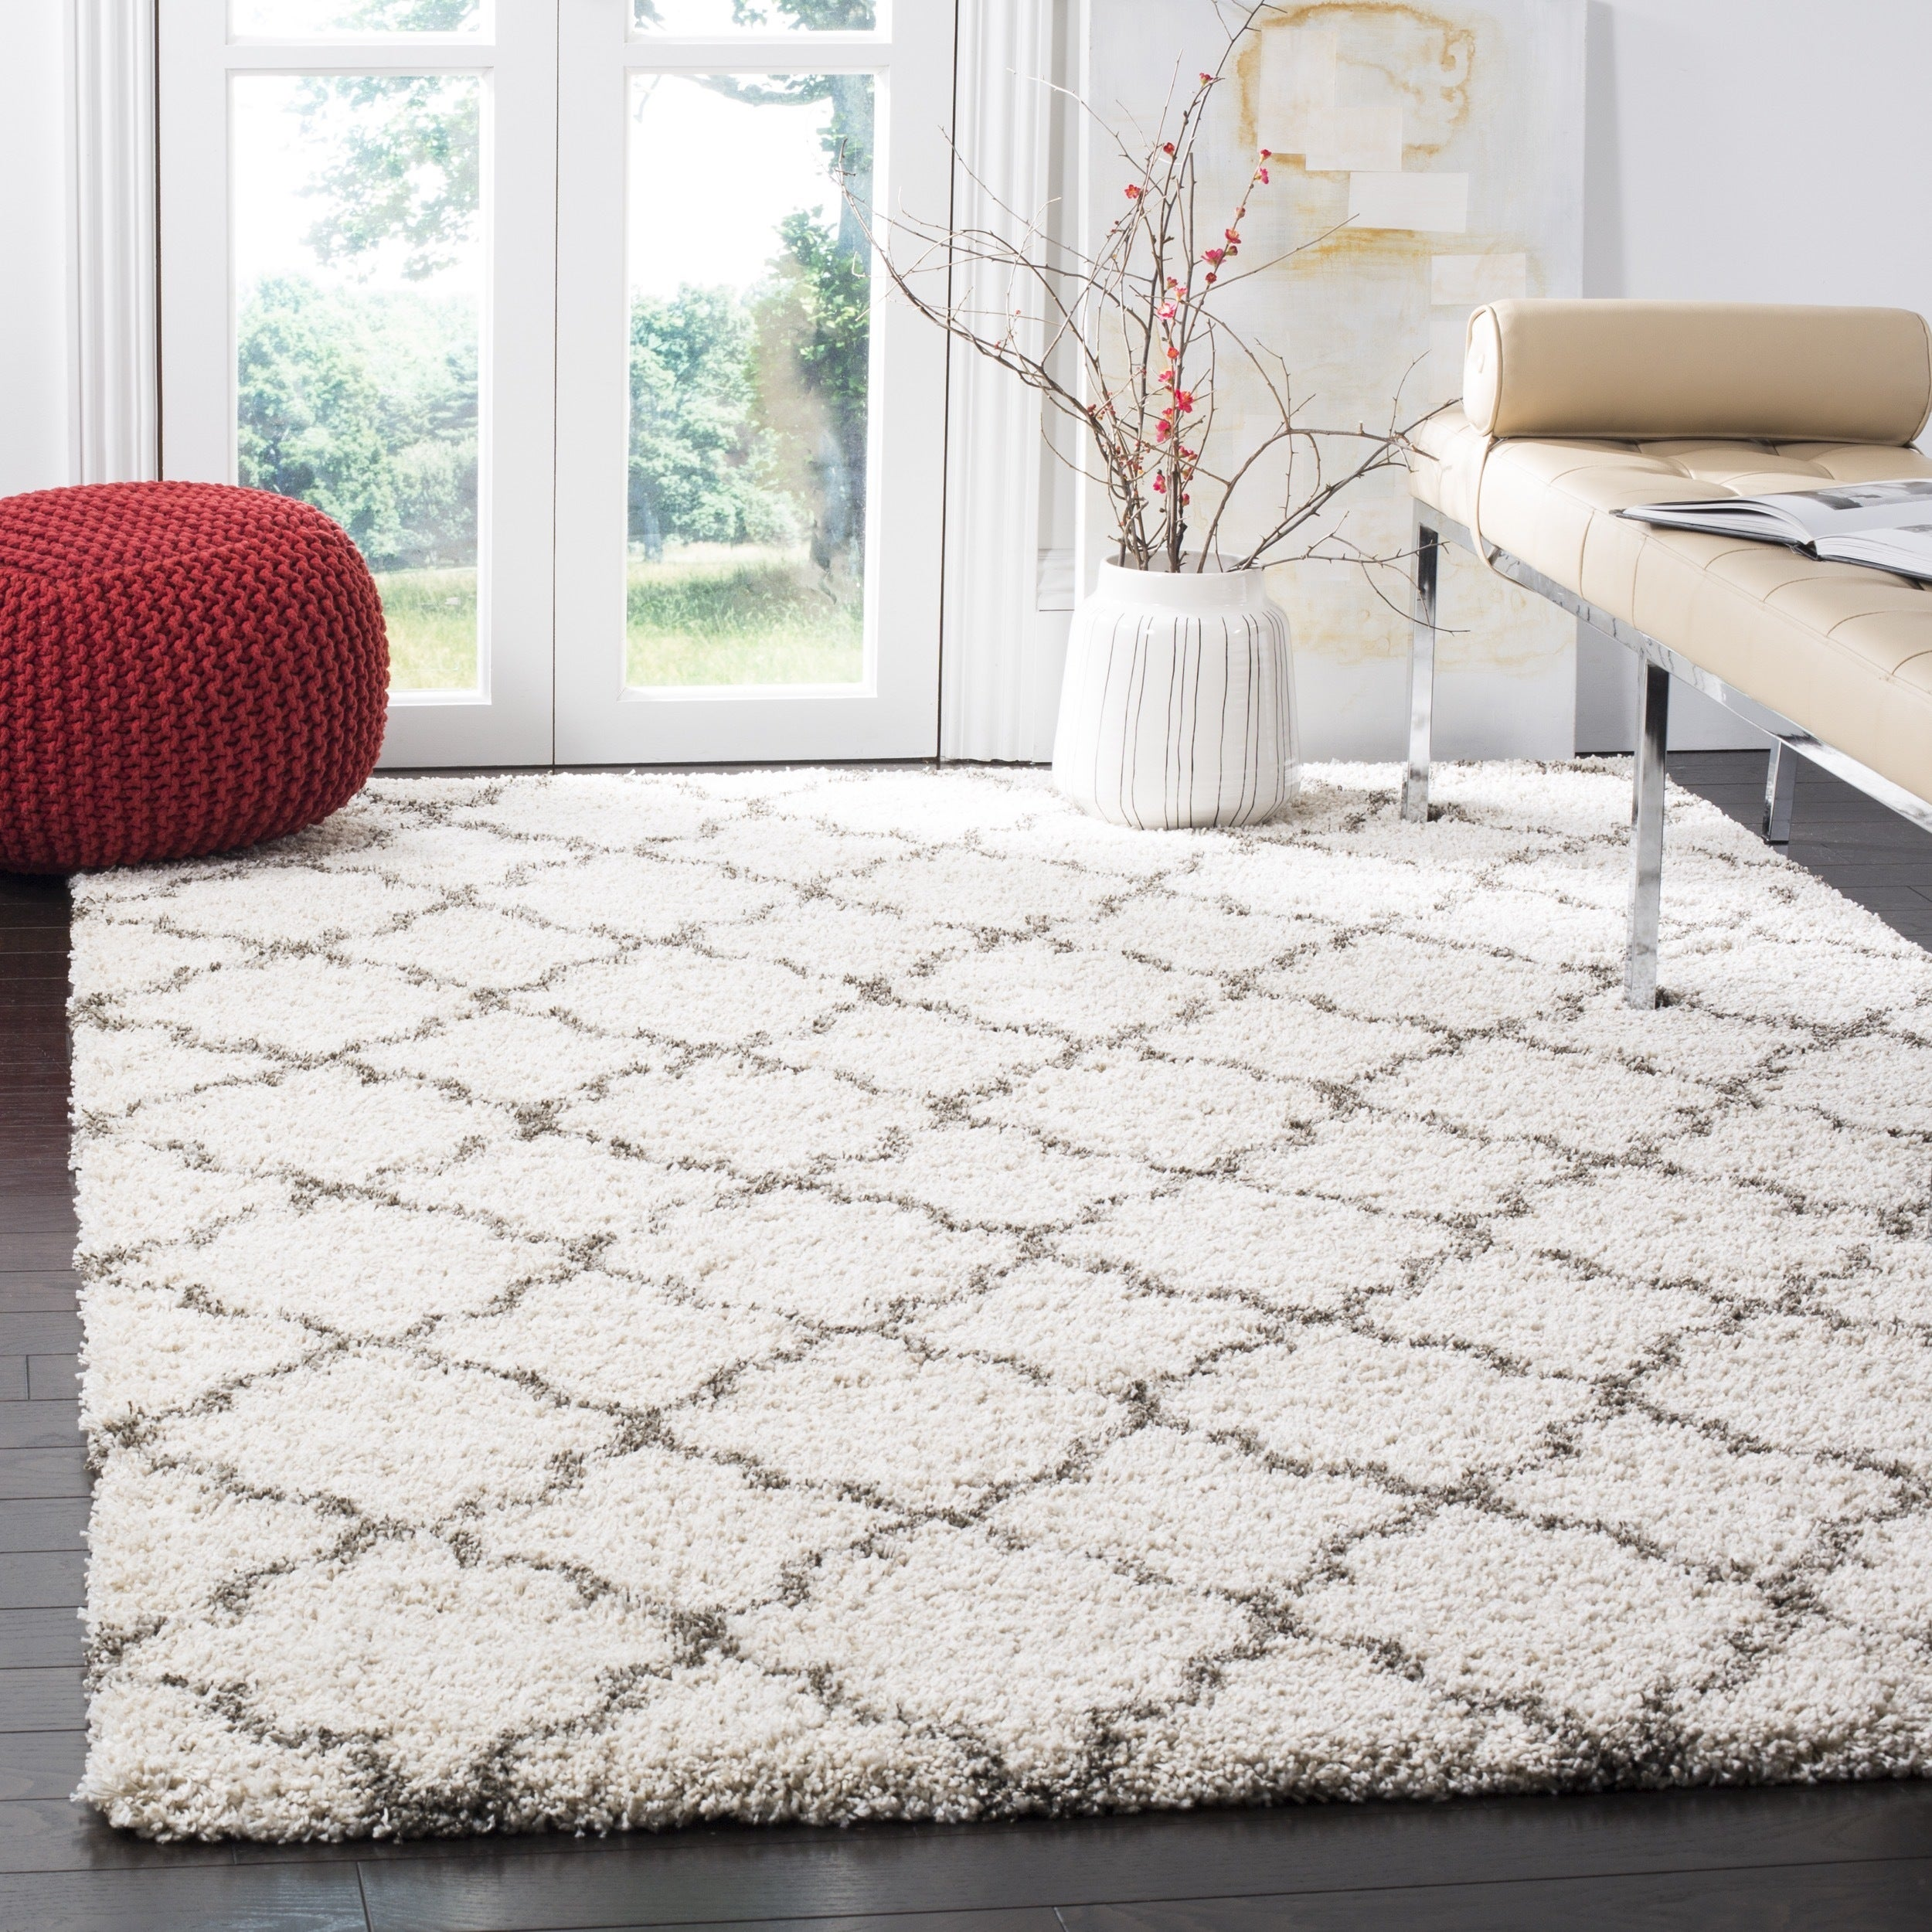 floormats mat floor living hand rubber of size place plastic chair home large depot area flooring full lovely in to rugs room where walmart for lowes tufted inexpensive rug dining placement